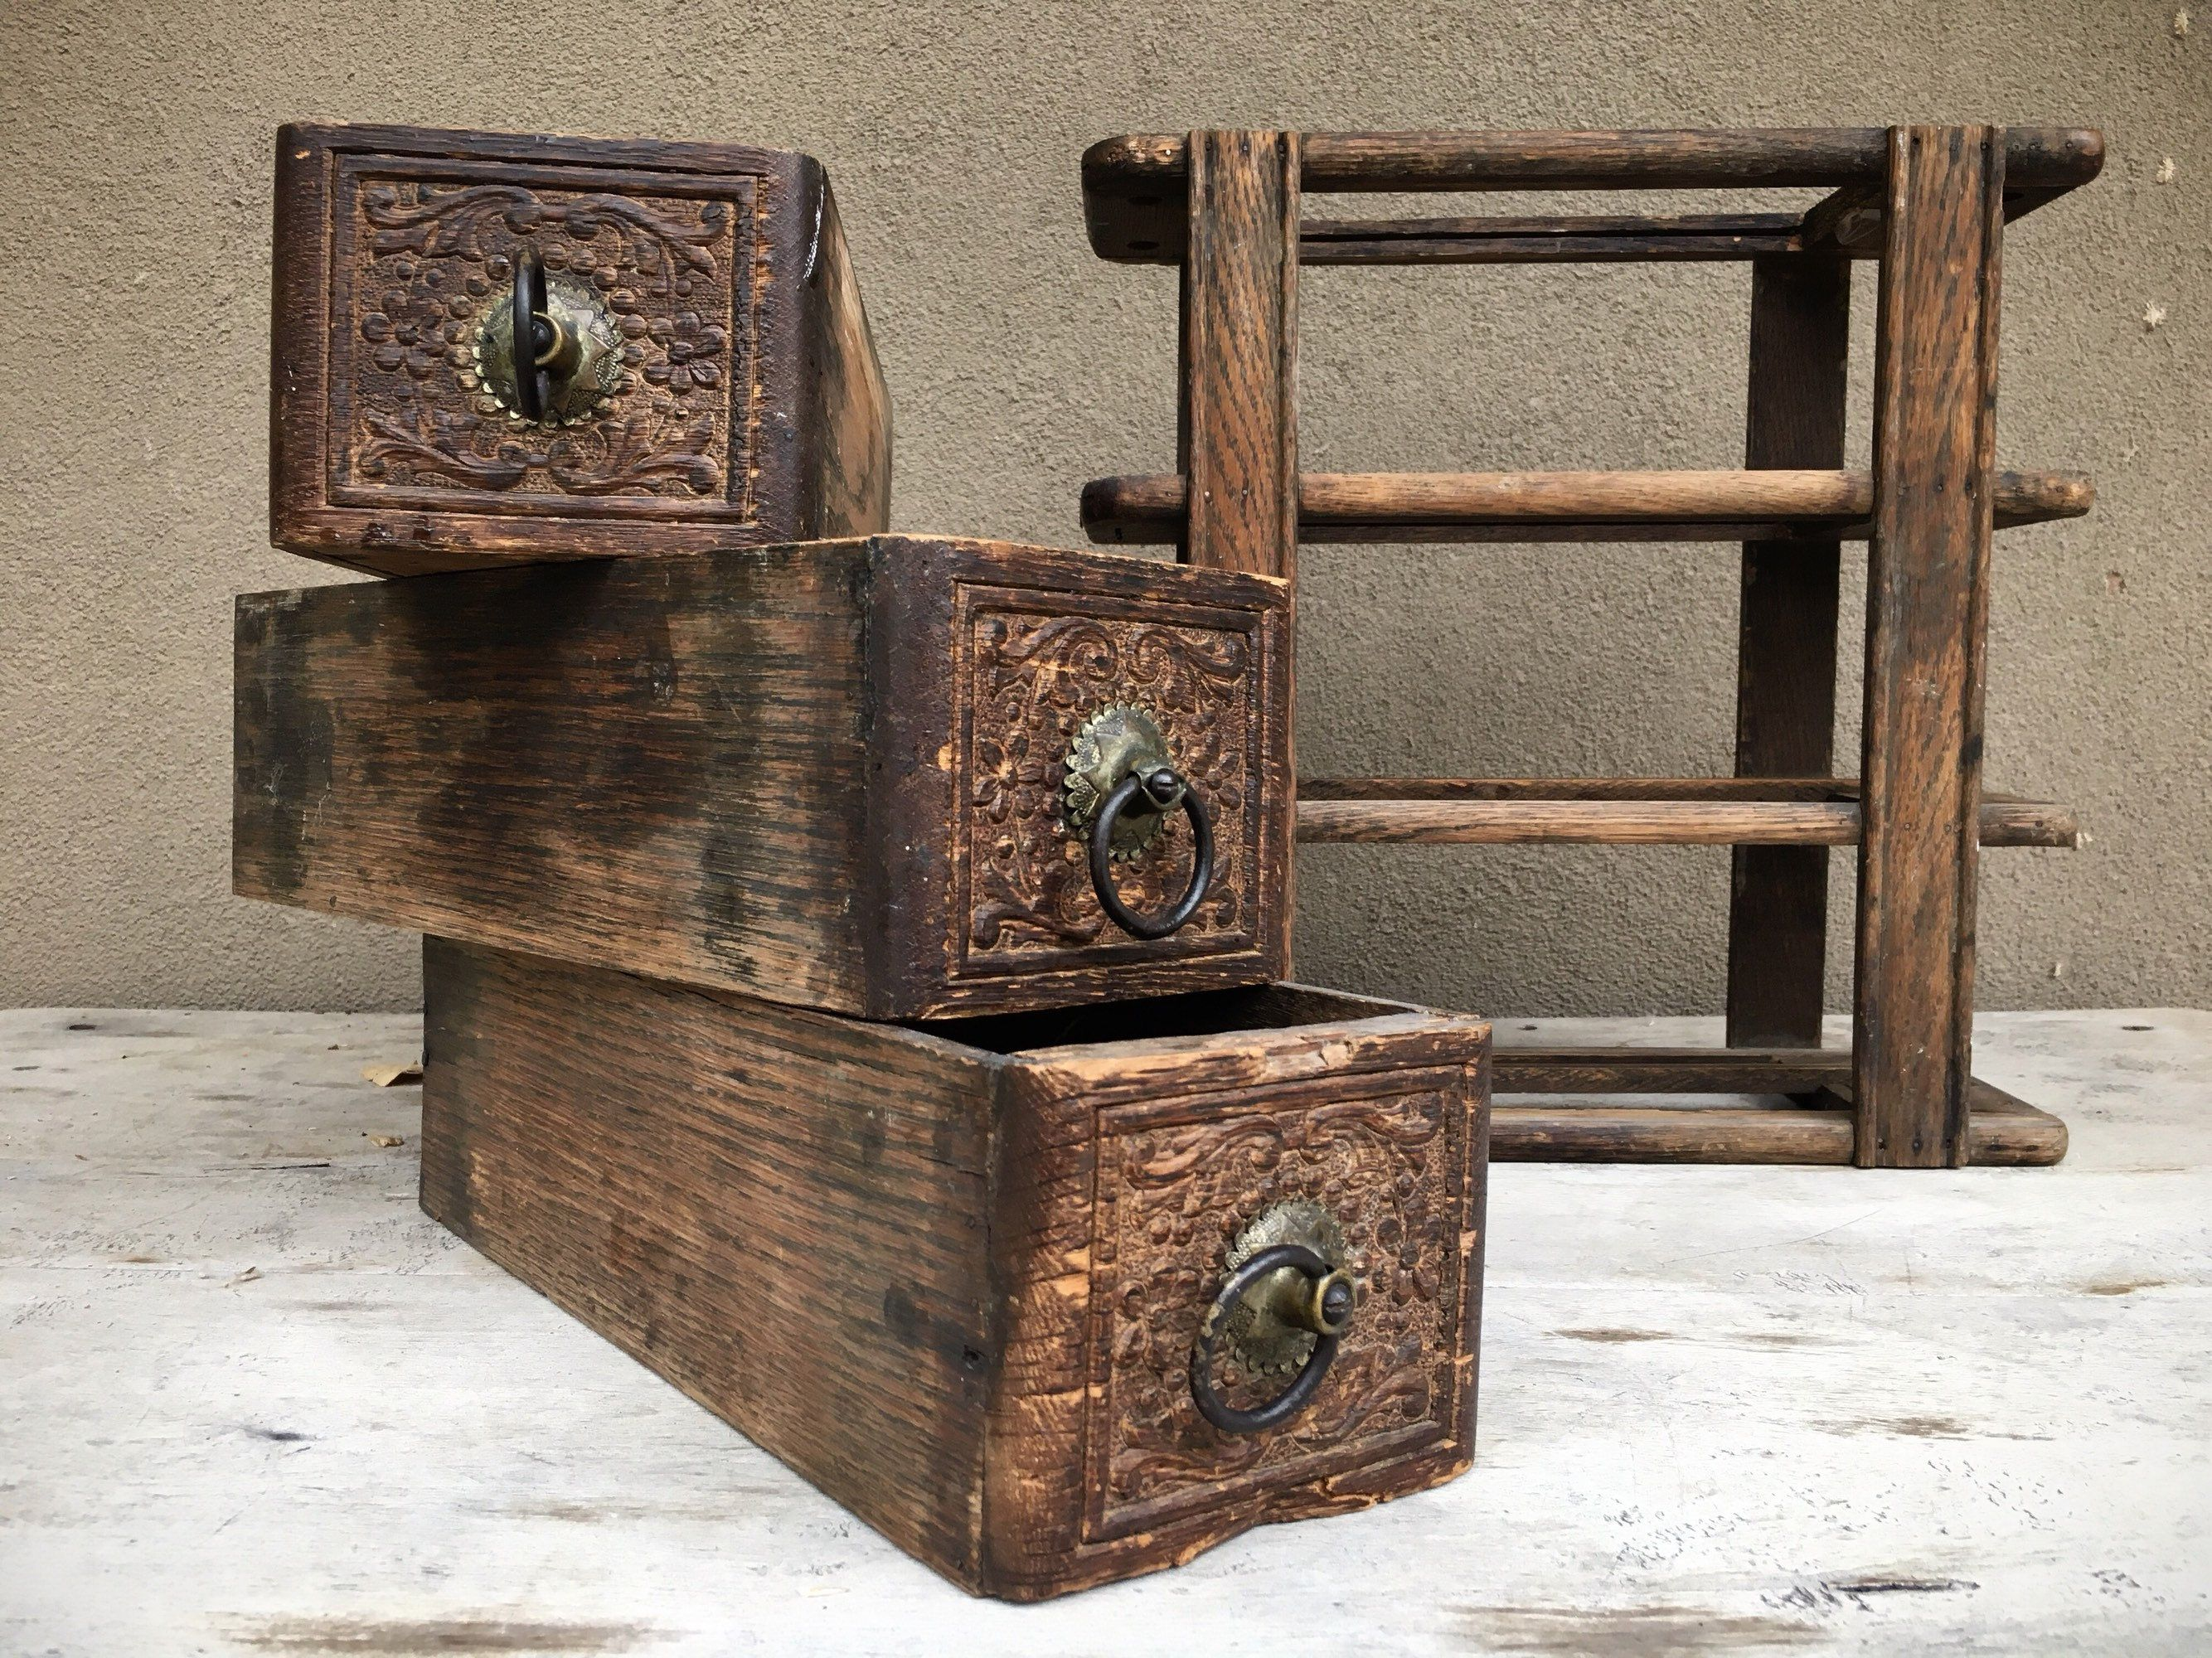 Old Rustic Sewing Machine Wood Drawers In Frame, Rustic Home